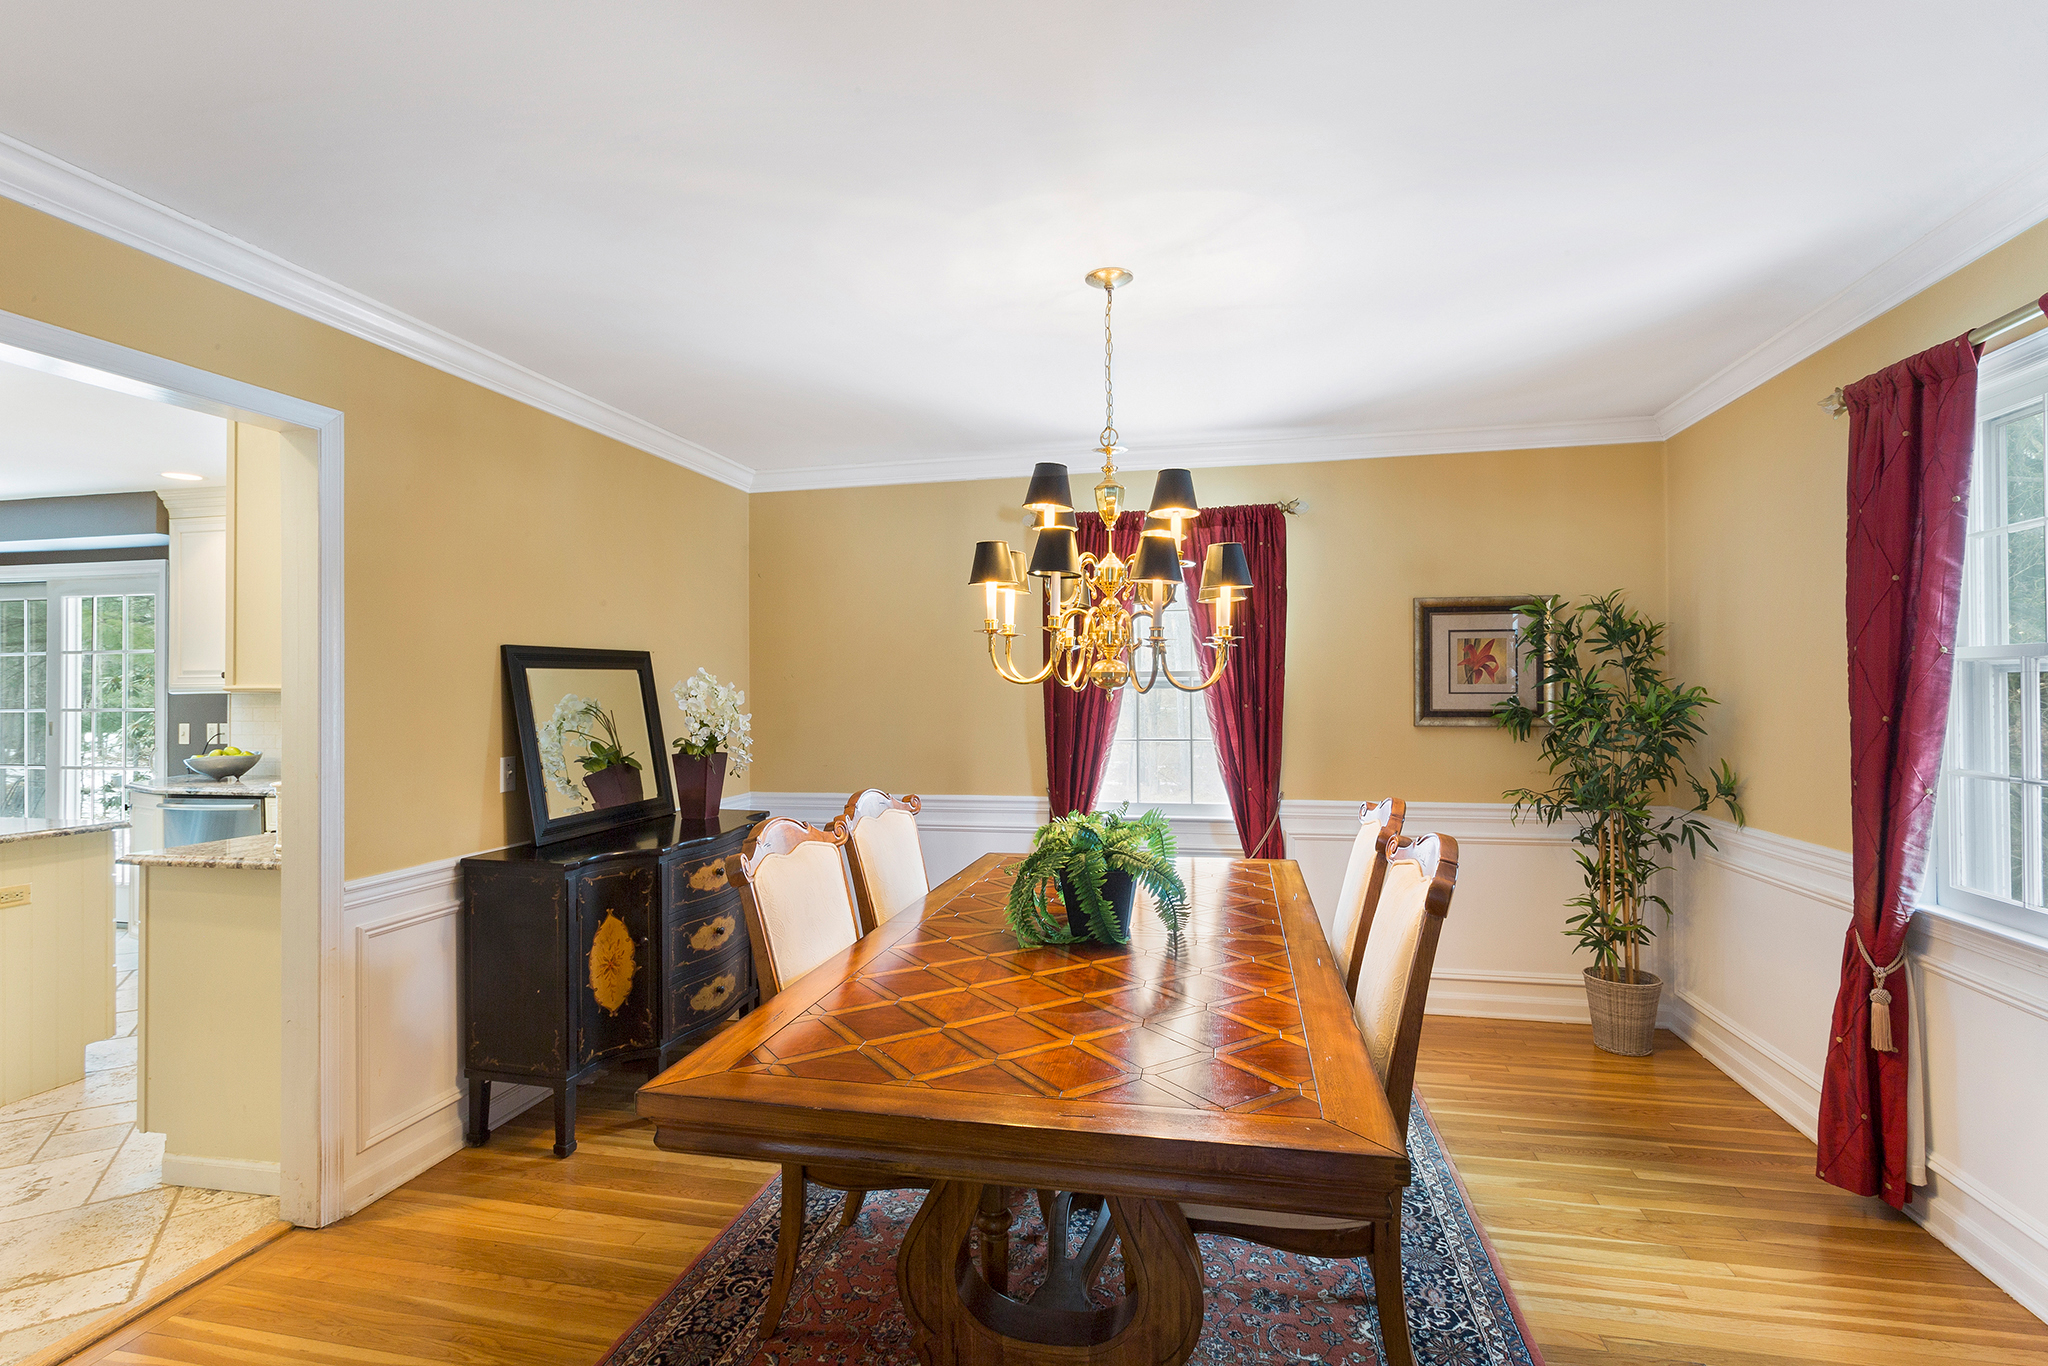 05 14 Keats Road Tewksbury Township — Dining Room